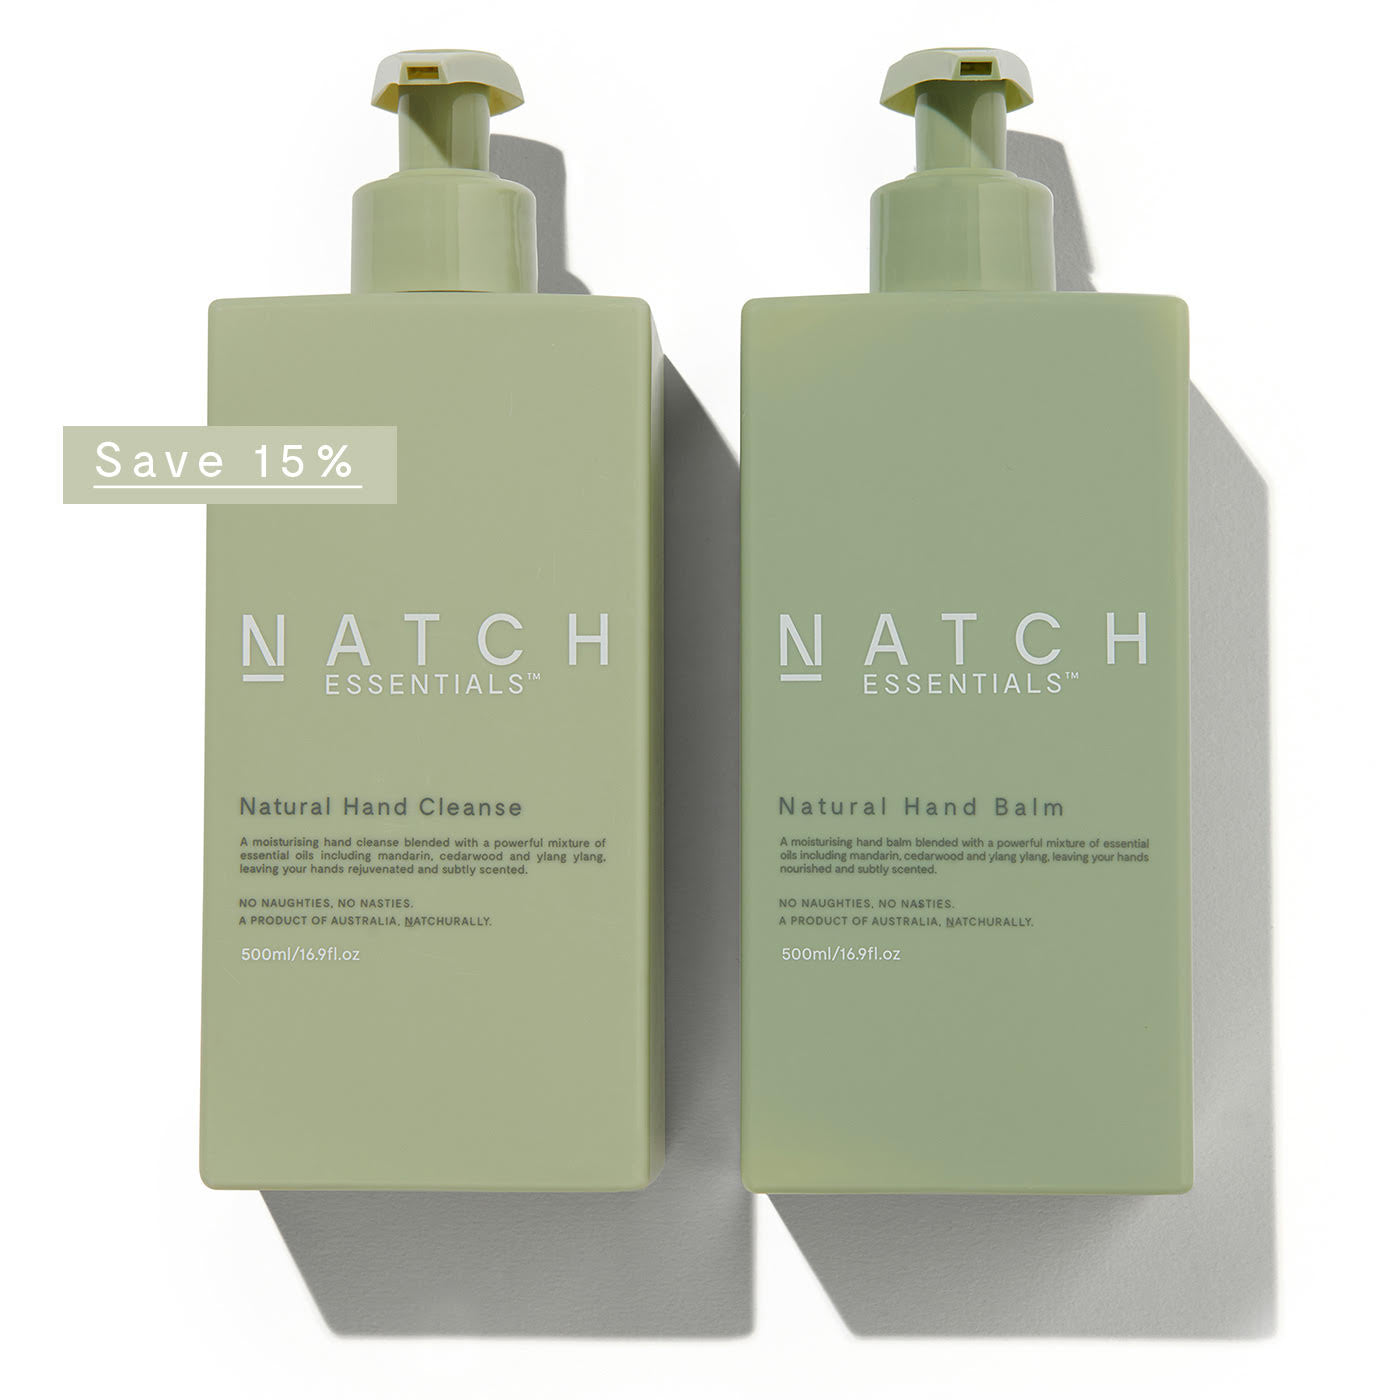 Natch Essentials natural hand wash and natural hand balm